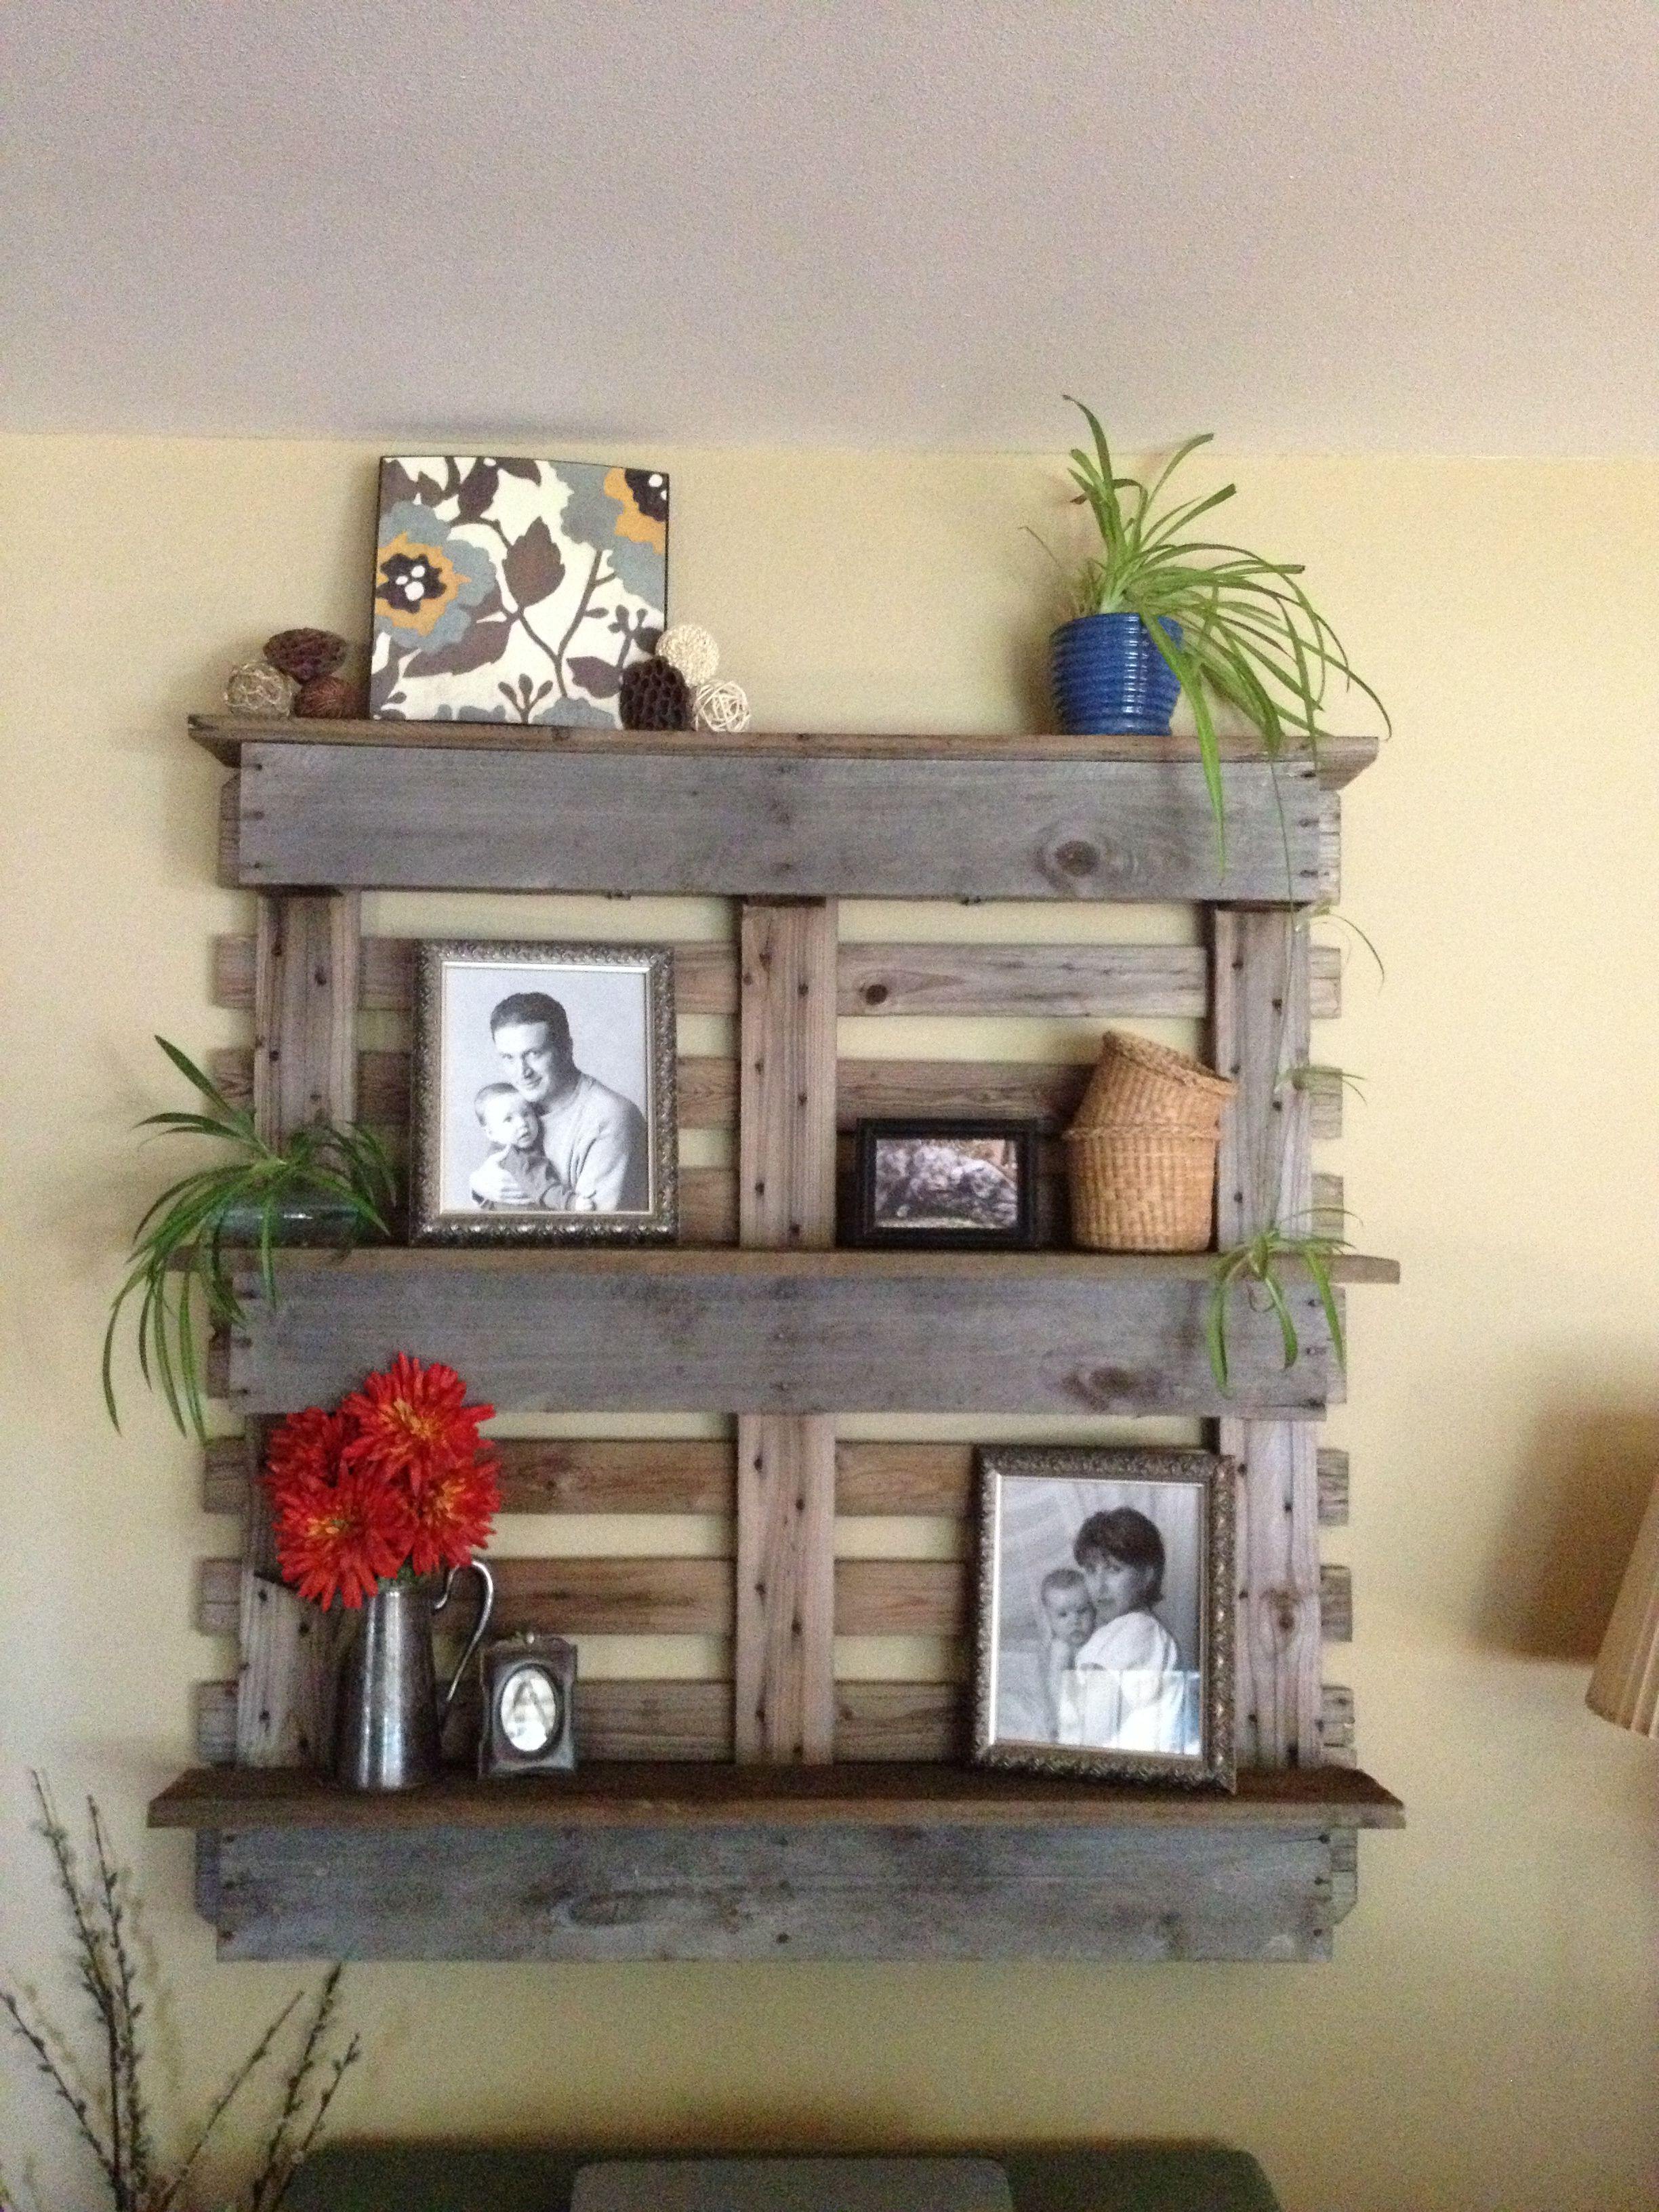 We Made This Shelf Out Of A Pallet And Some